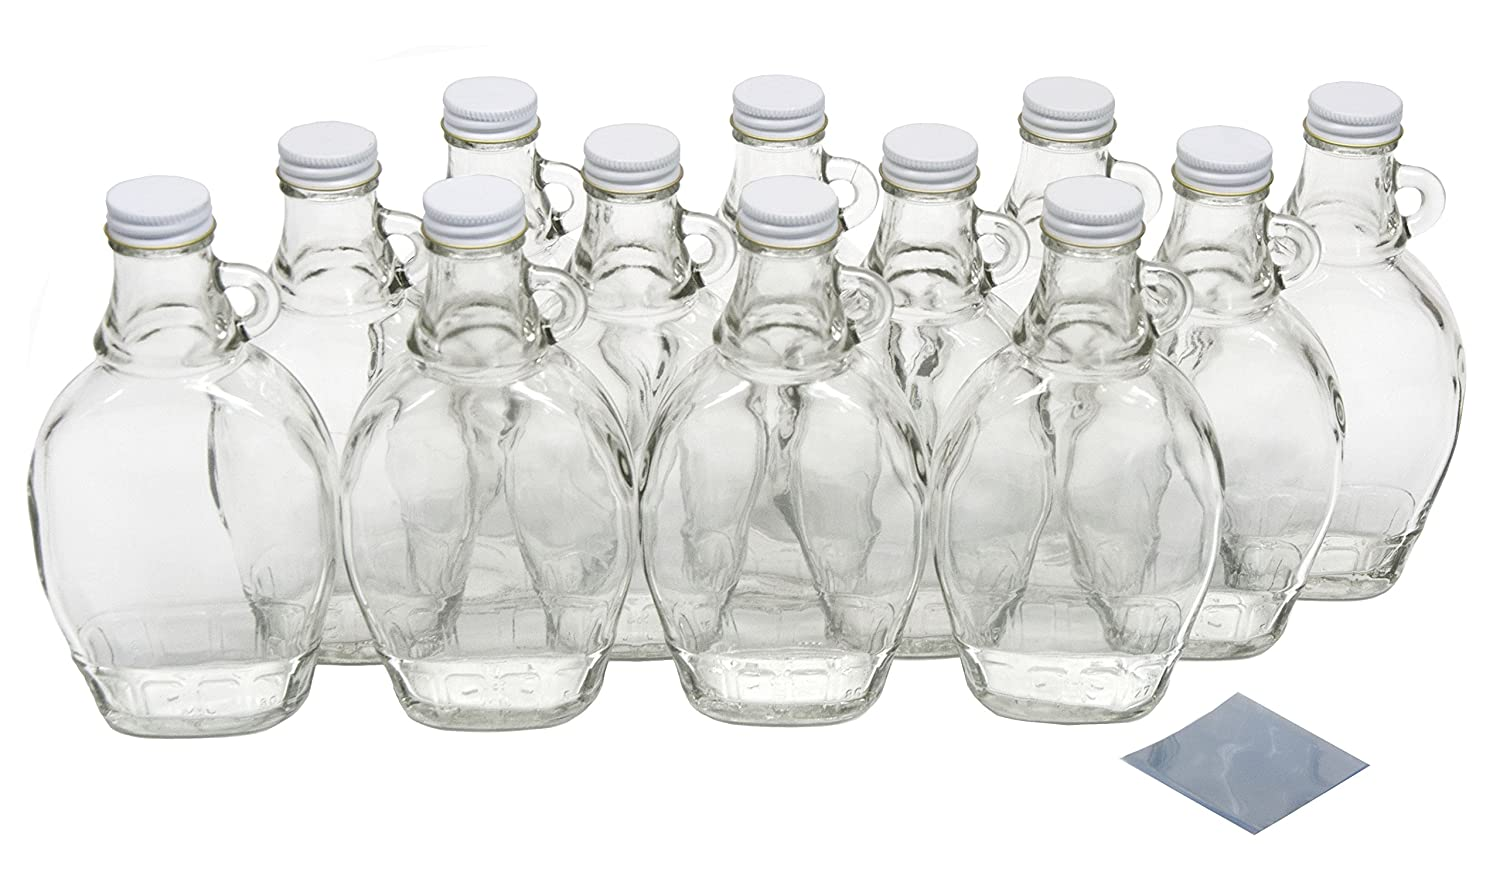 North Mountain Supply 8 Ounce Glass Maple Syrup Bottles with Loop Handle & White Metal Lids & Shrink Bands - Case of 12